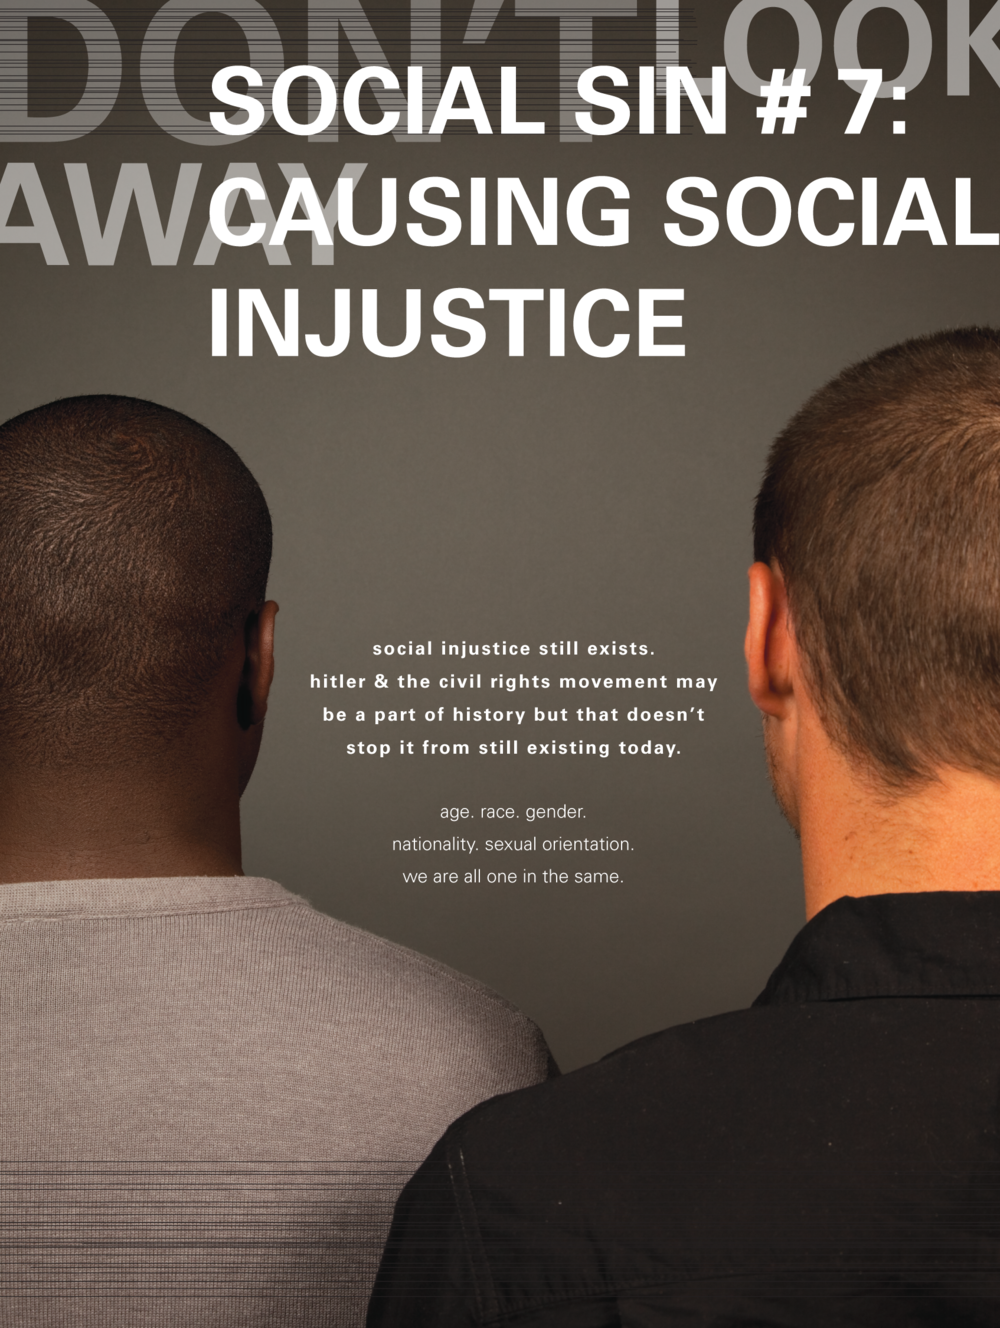 Social Sin #7 Causing Social Injustice